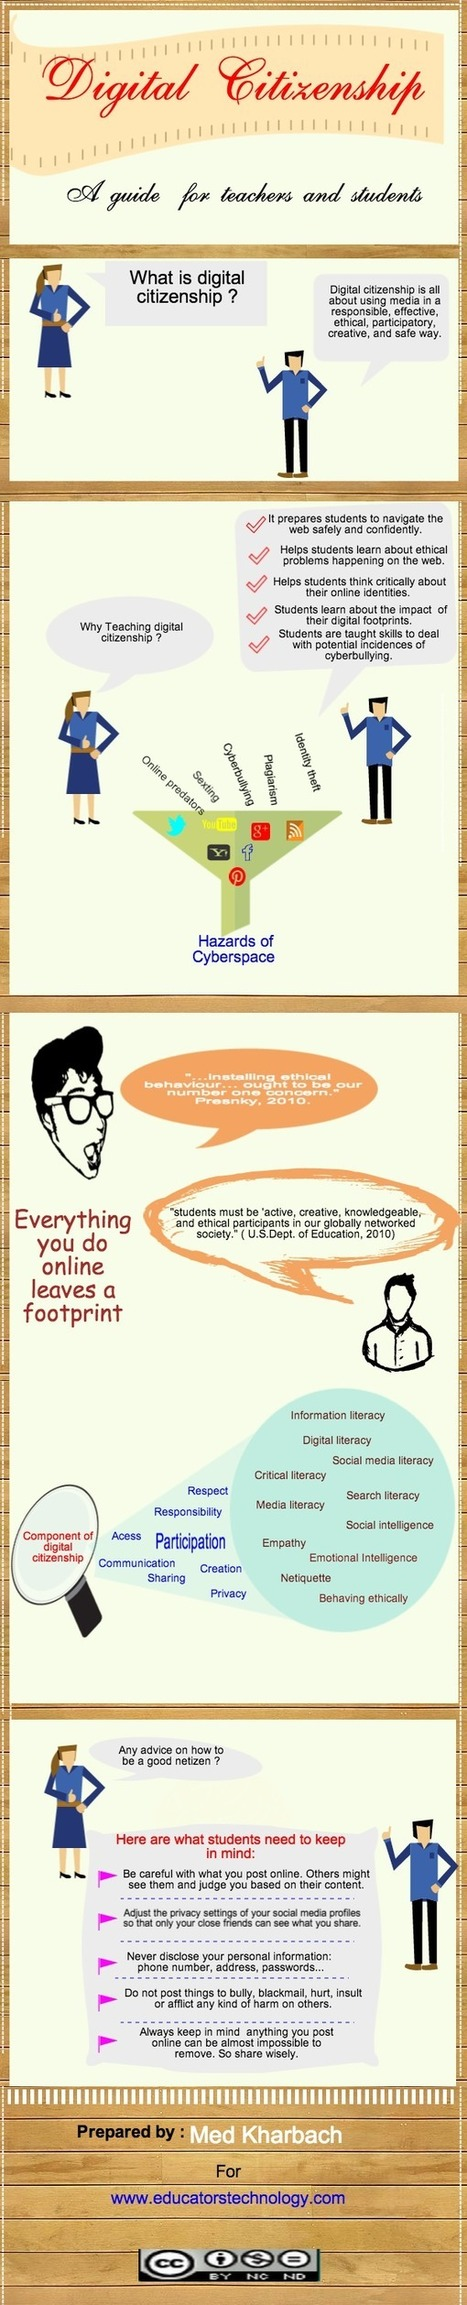 Digital Citizenship Explained for Teachers via @medkh9 | ICT in Education | Scoop.it